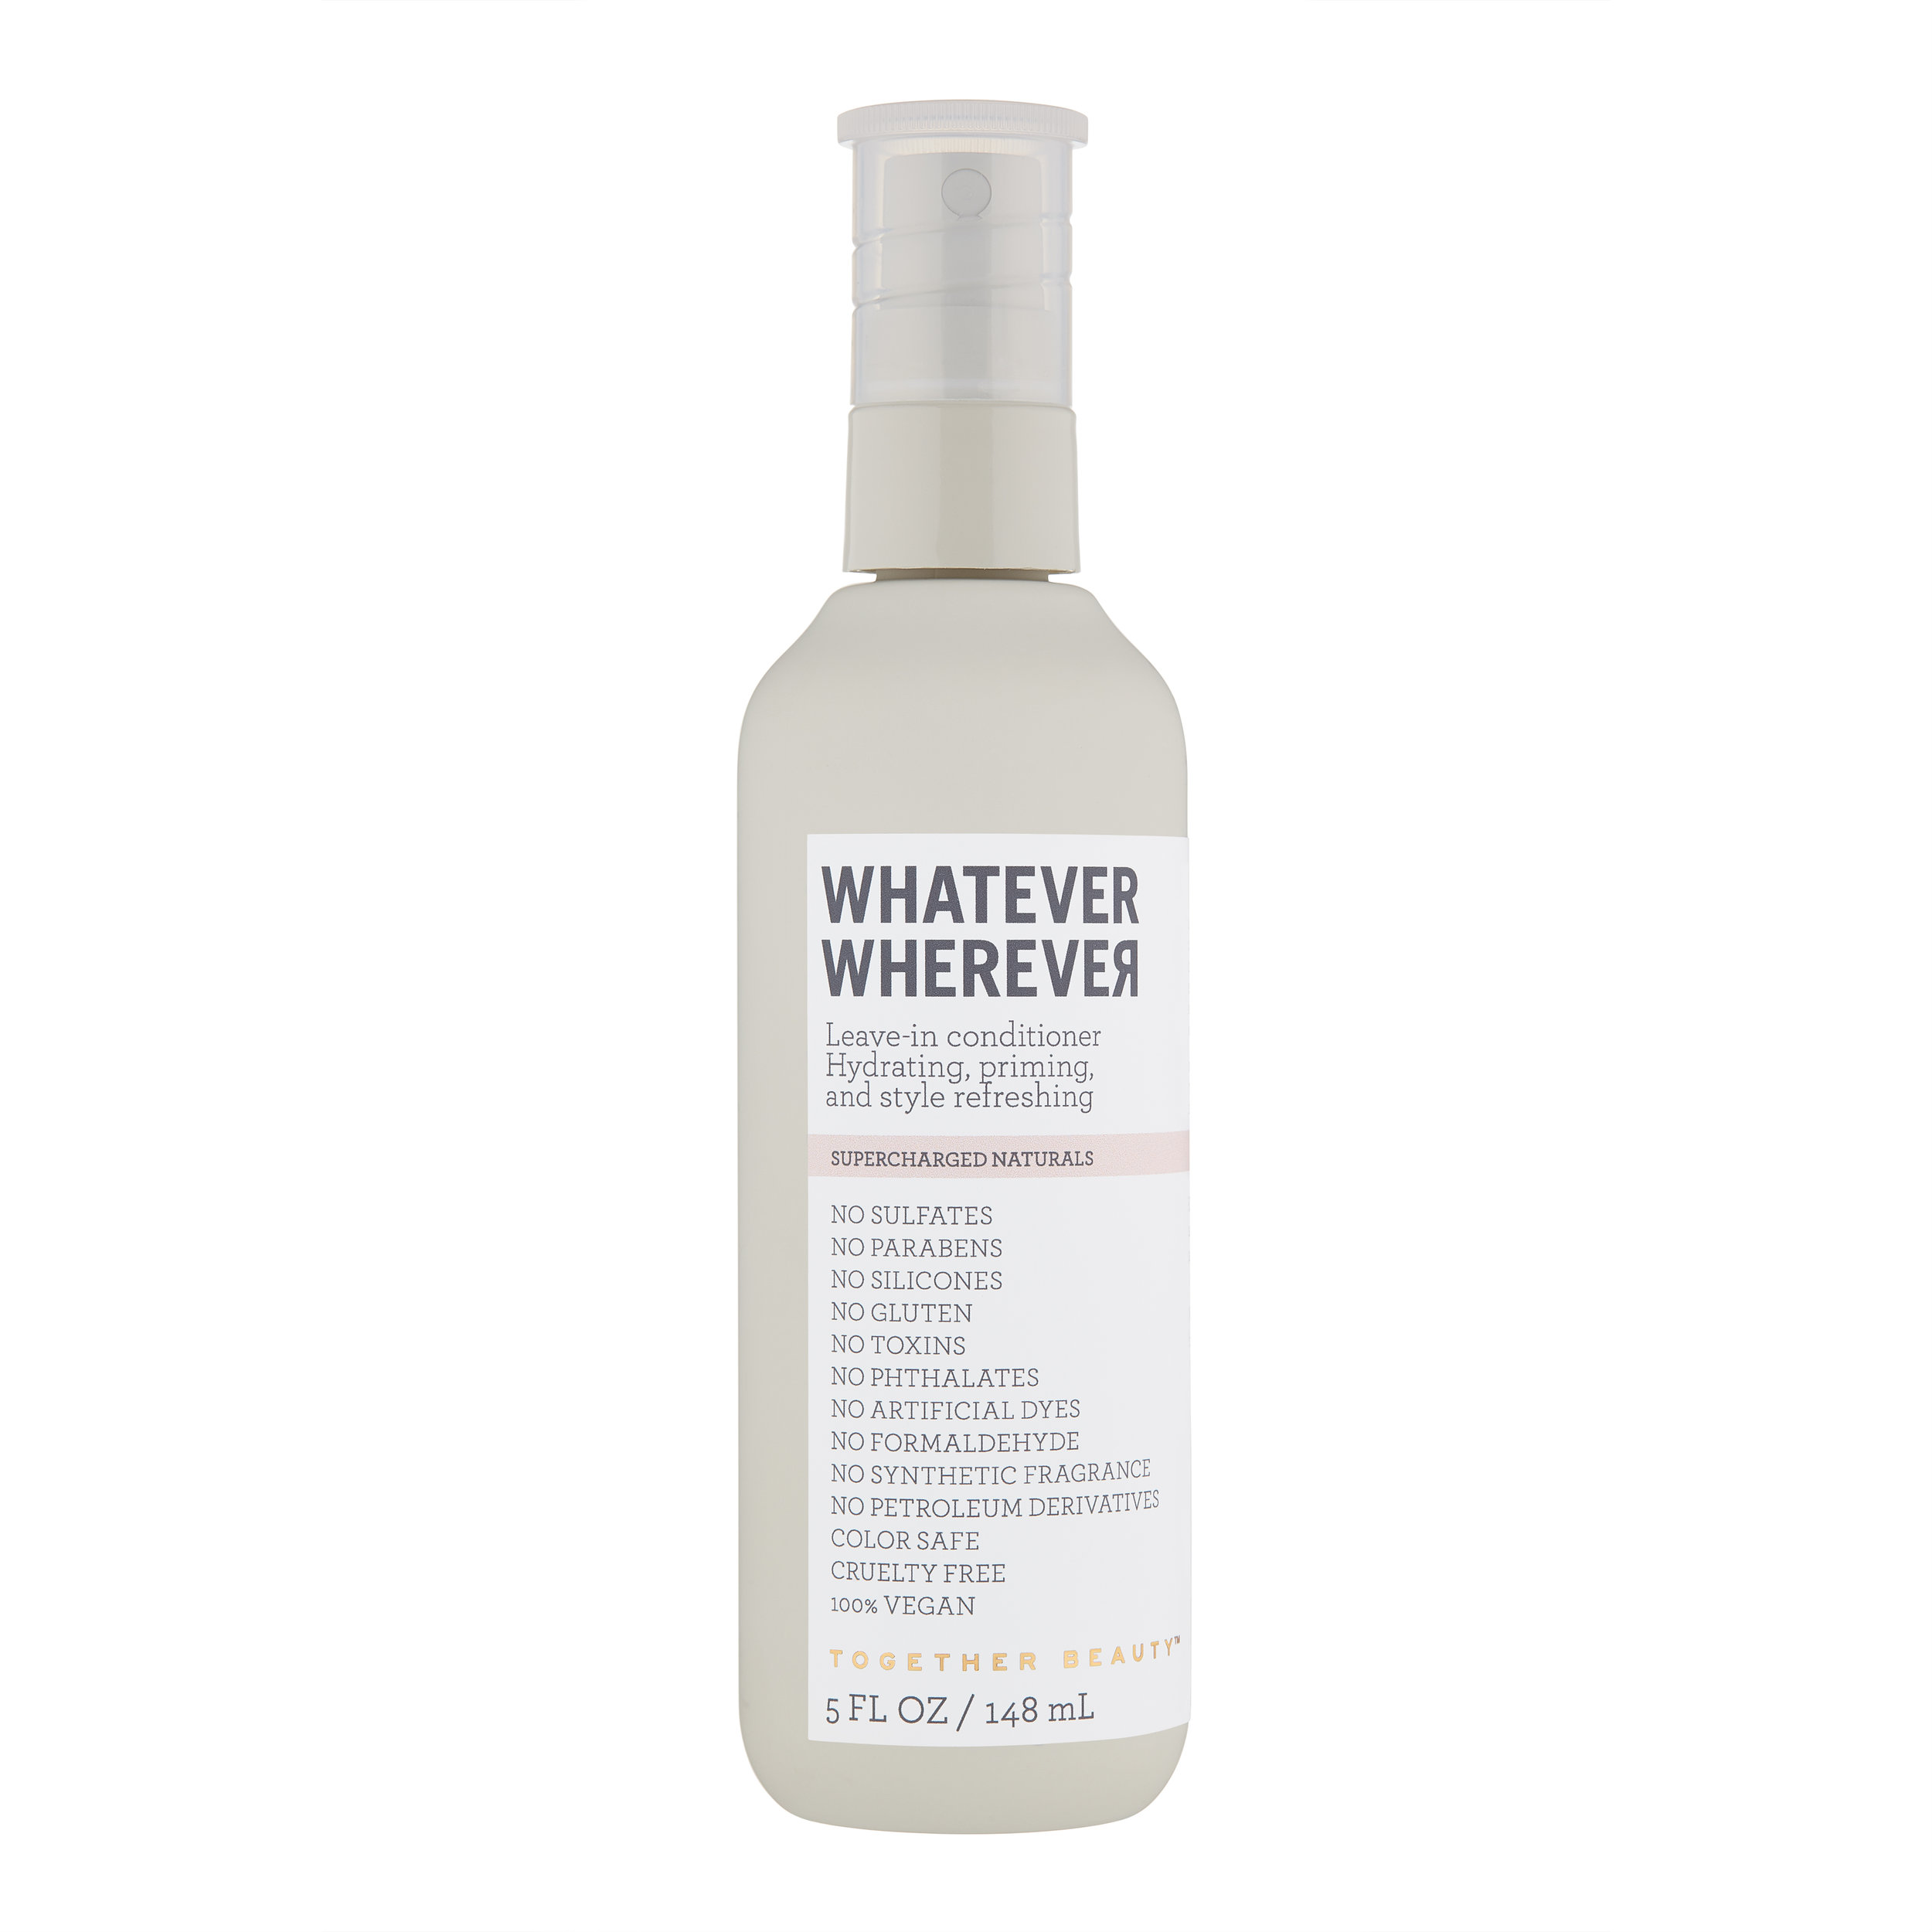 WHATEVER WHEREVER - Leave-in conditionerHydrating, priming, and style refreshing